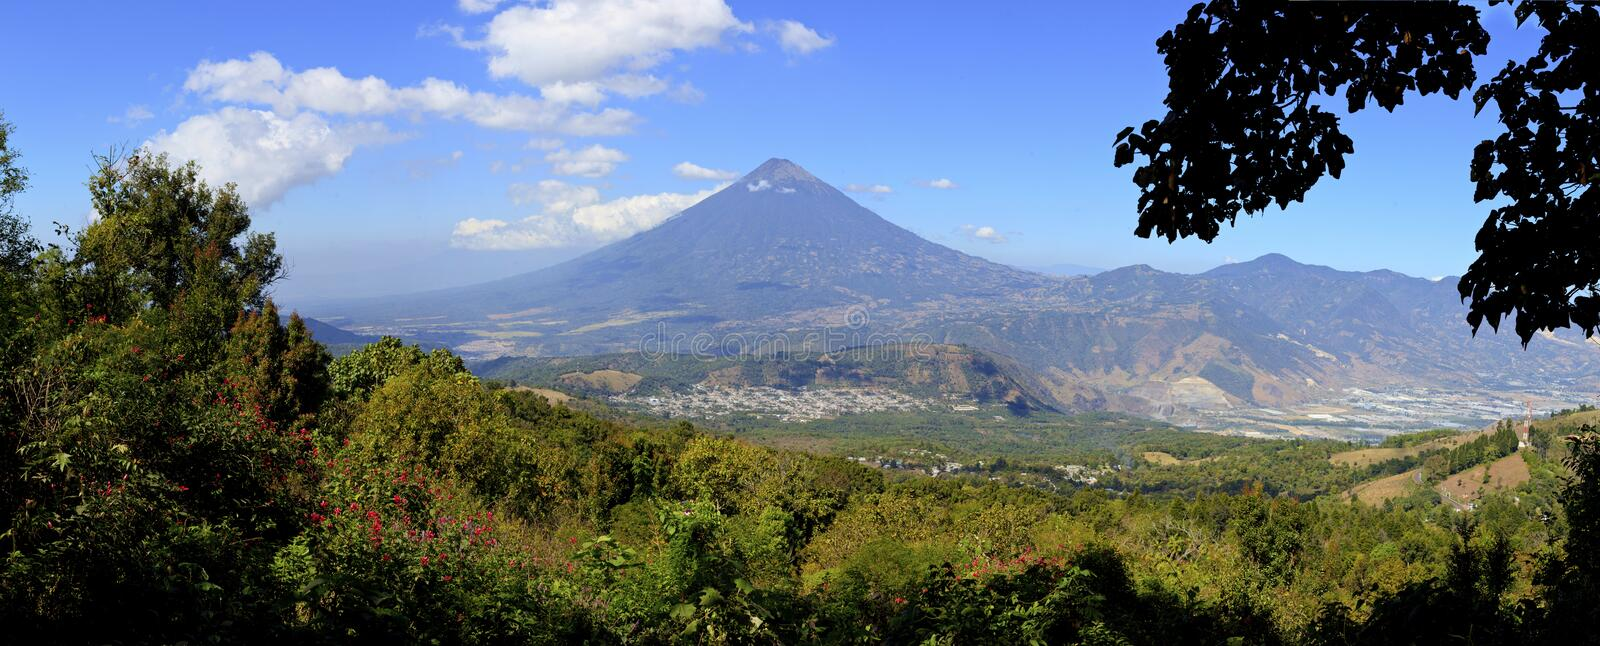 Download Scenic View Of The Agua Volcano As Seen From The Slopes Of The Pacaya Volcano Stock Photo - Image: 28991550